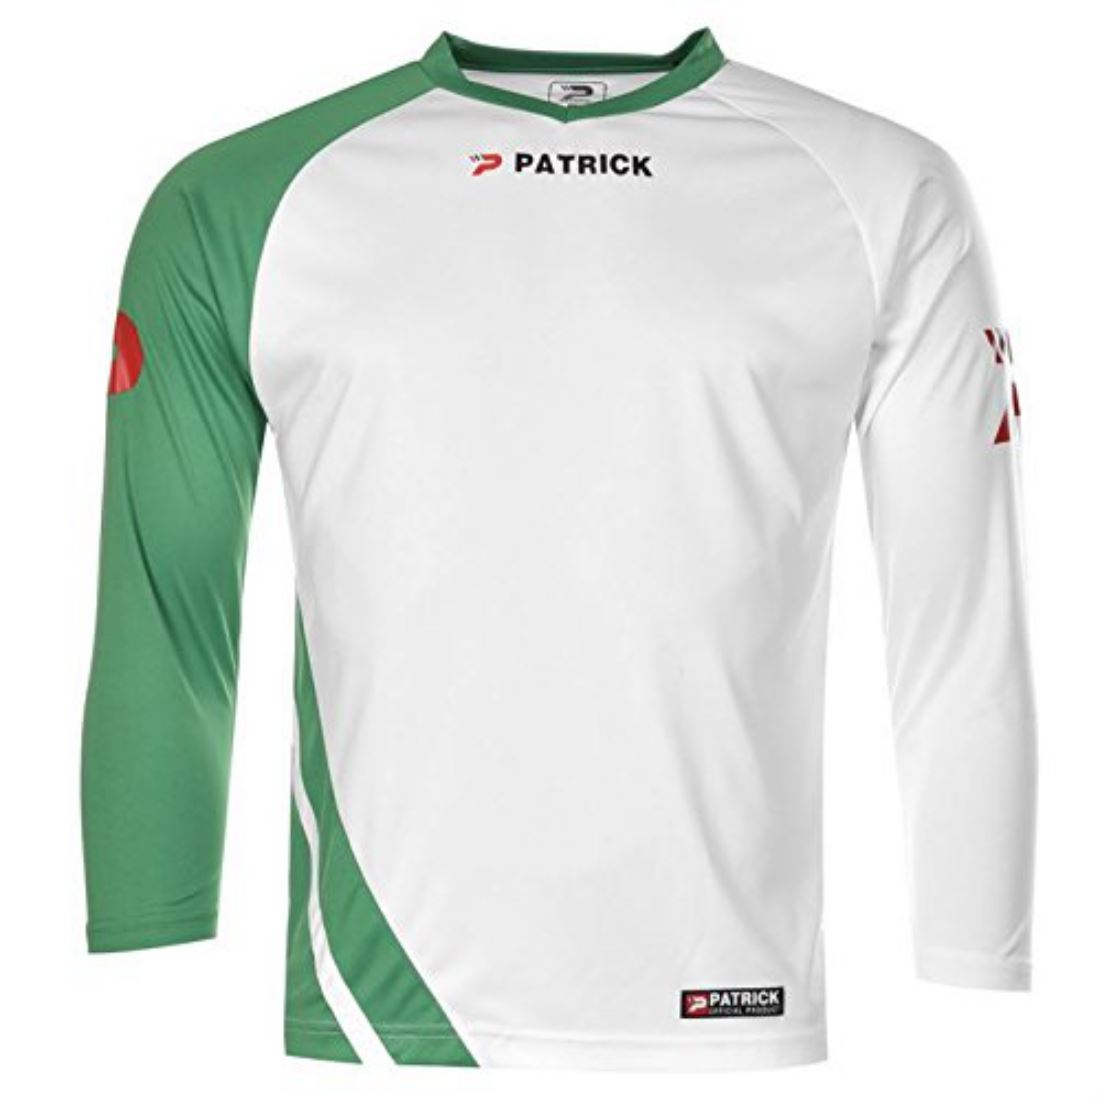 Patrick mens football long sleeve training top lightweight for Lightweight breathable long sleeve shirts